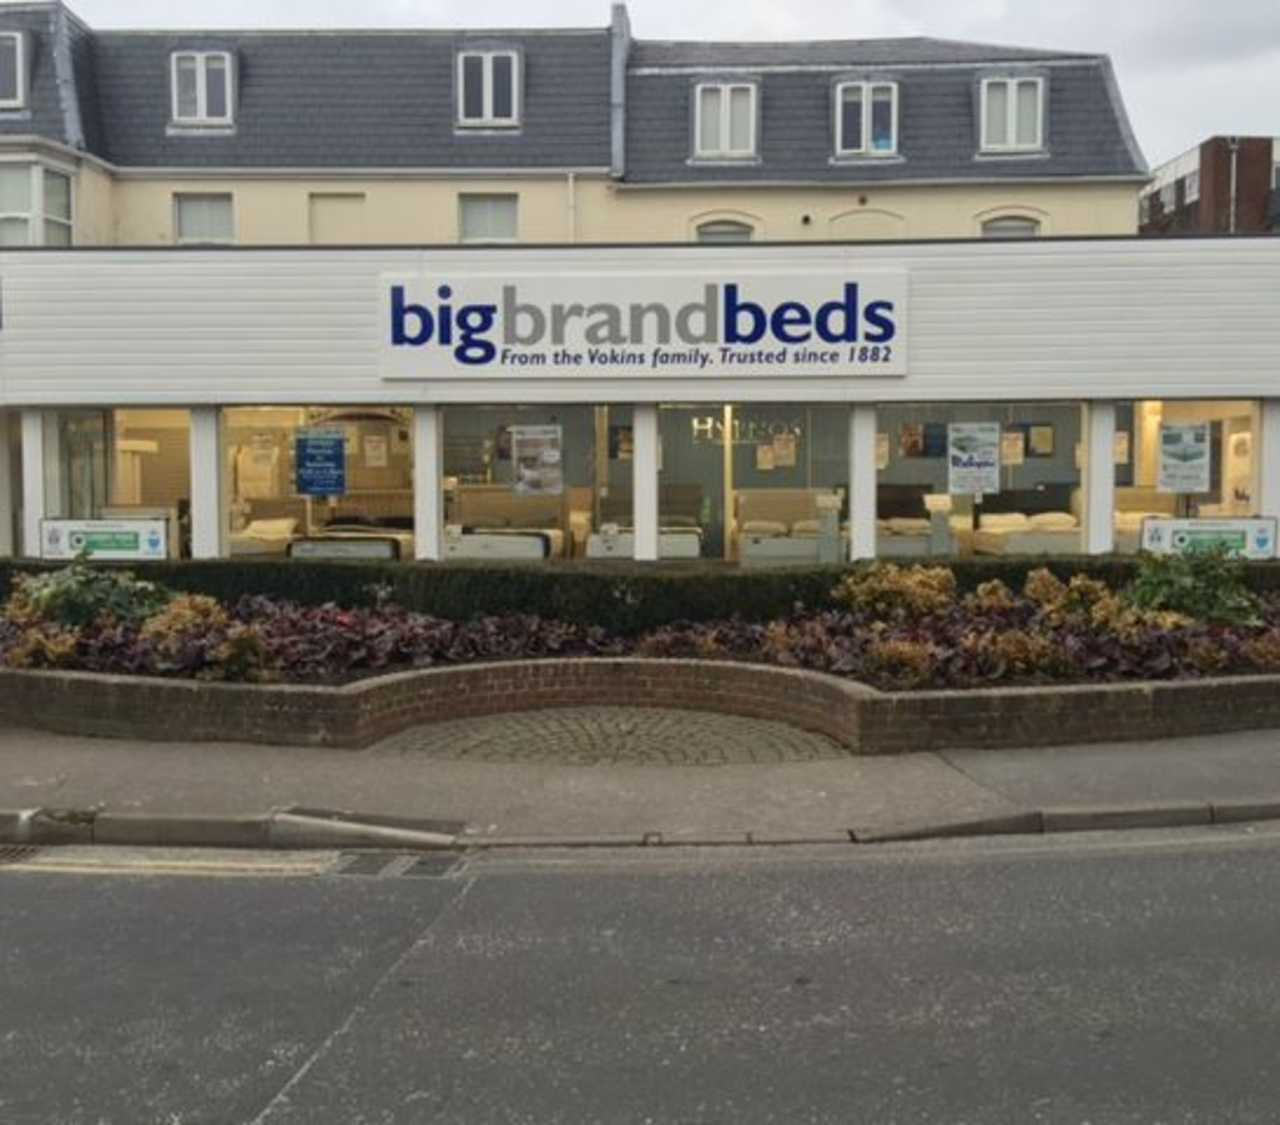 Big Brand Beds - Shopping - Home Furnishings in Burgess Hill